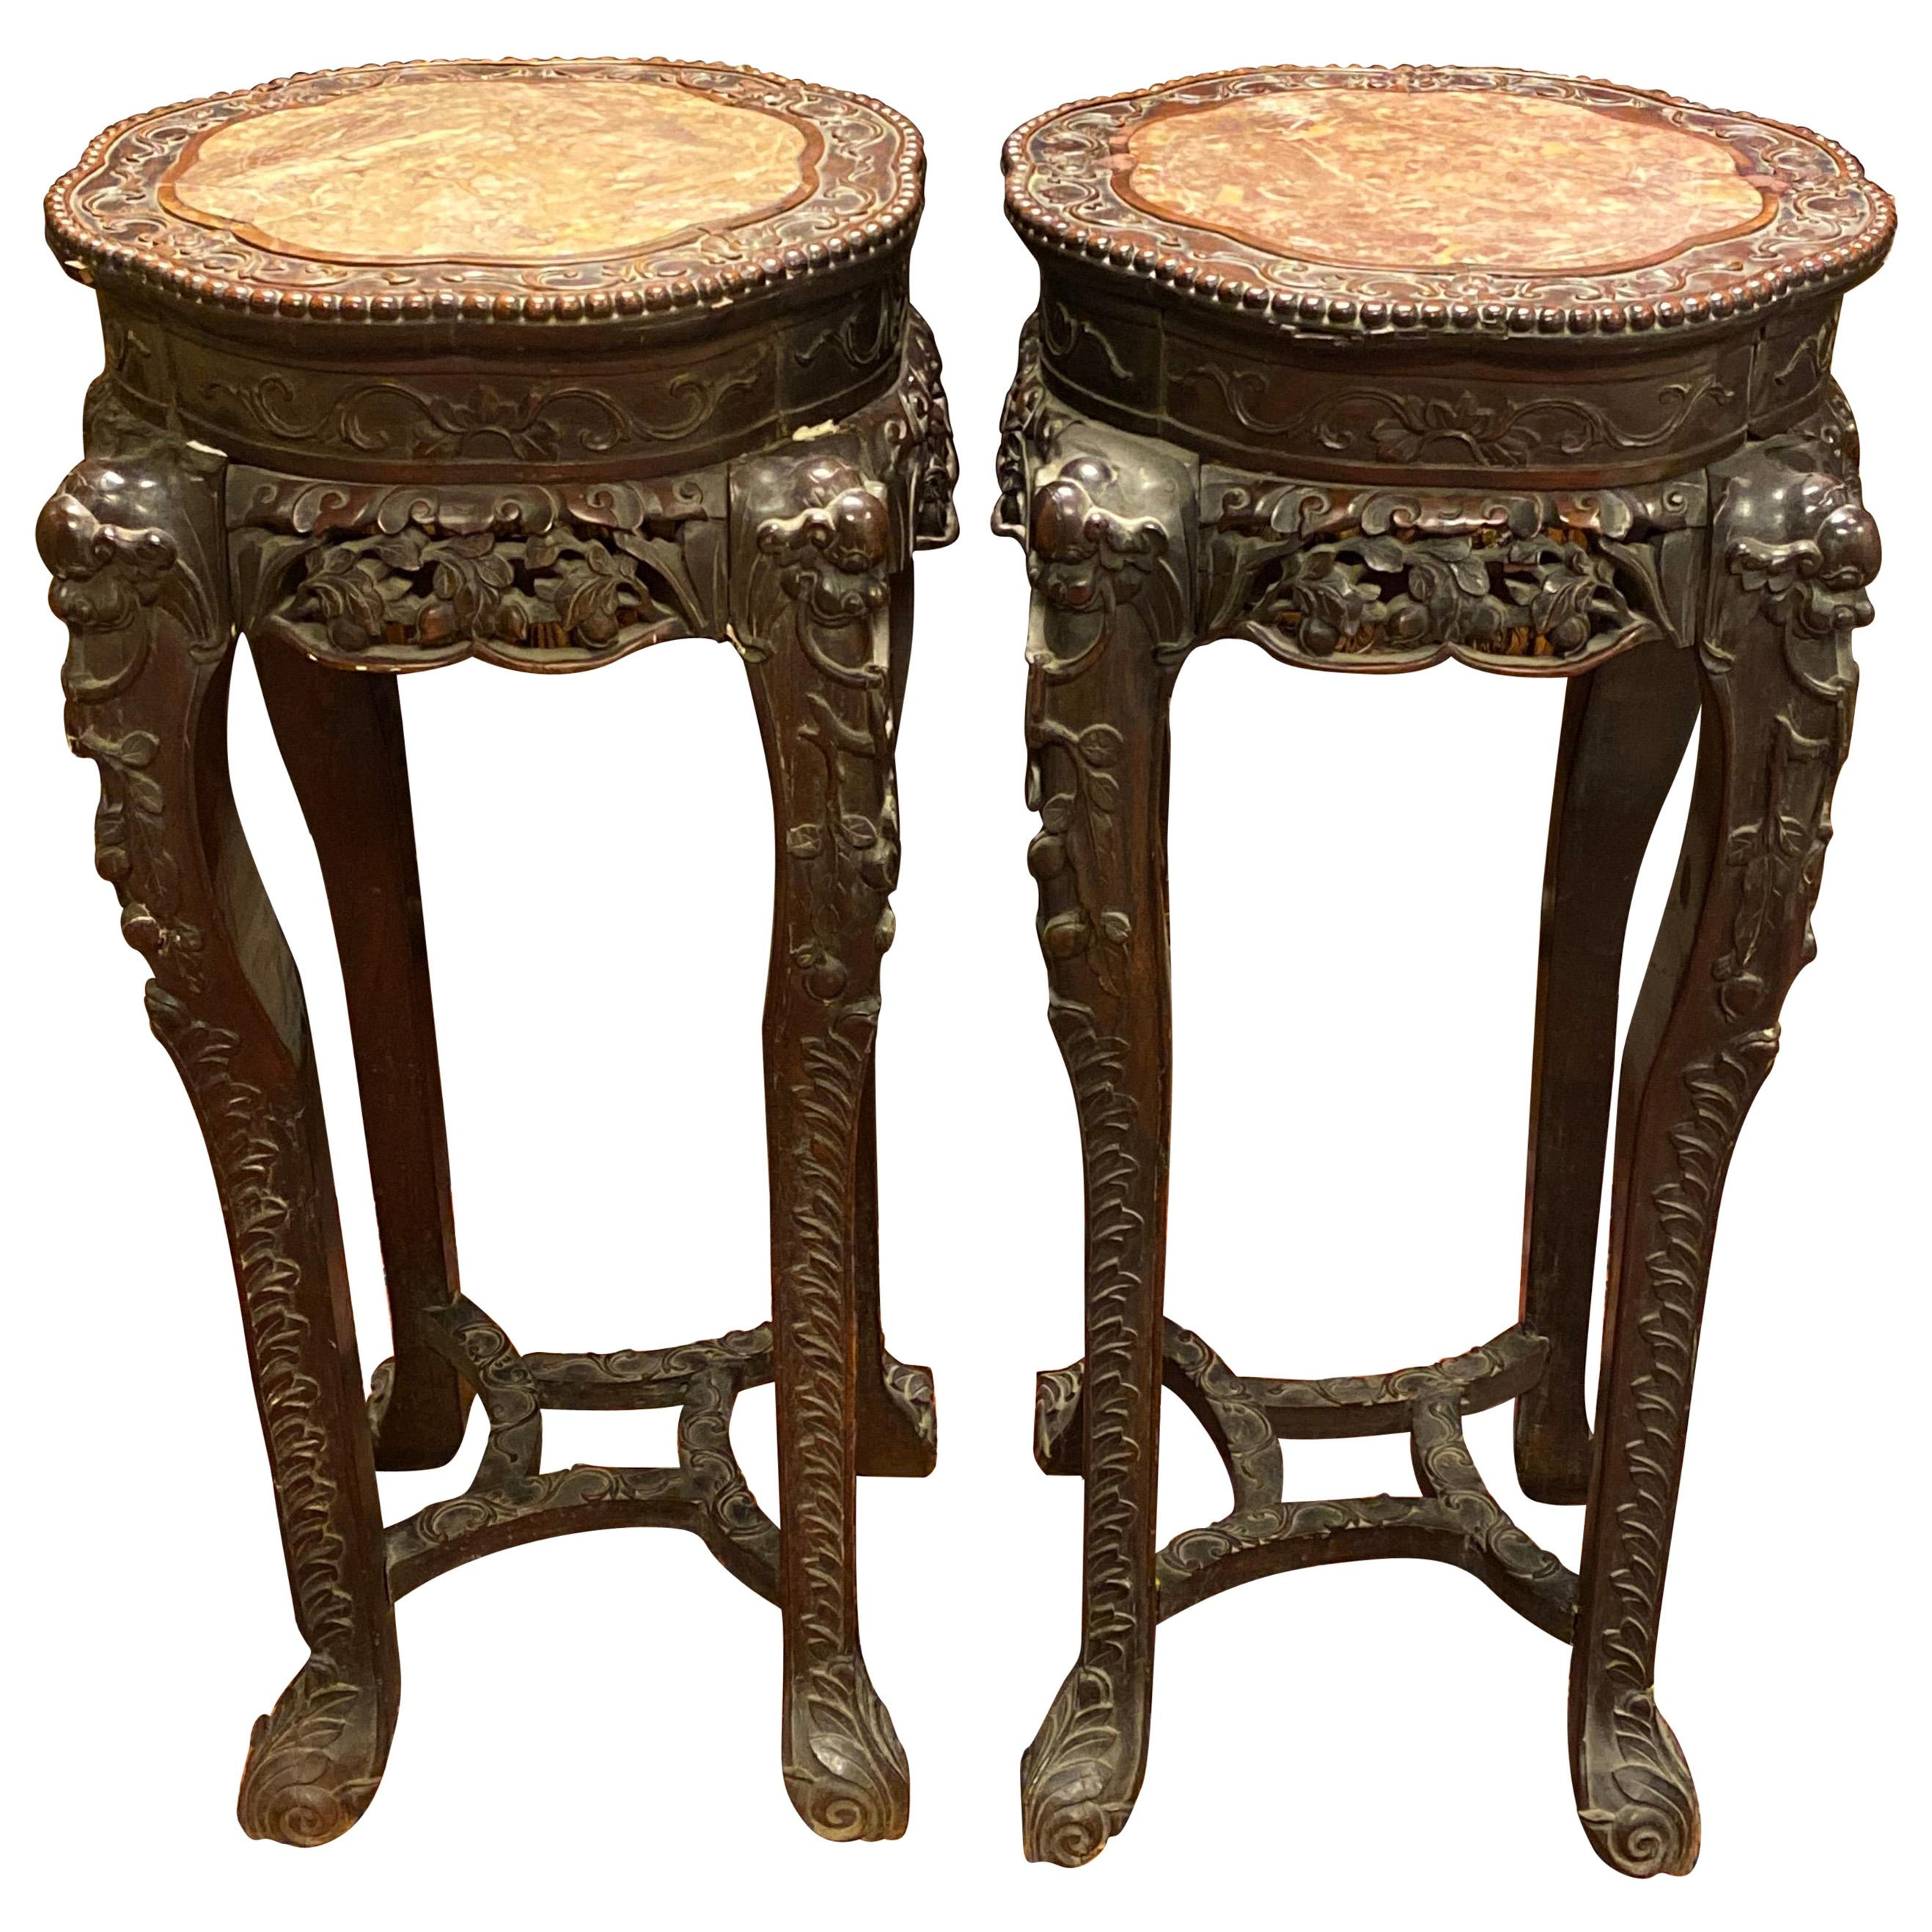 Pair of Chinese Carved Teak Wood and Marble Pedestals